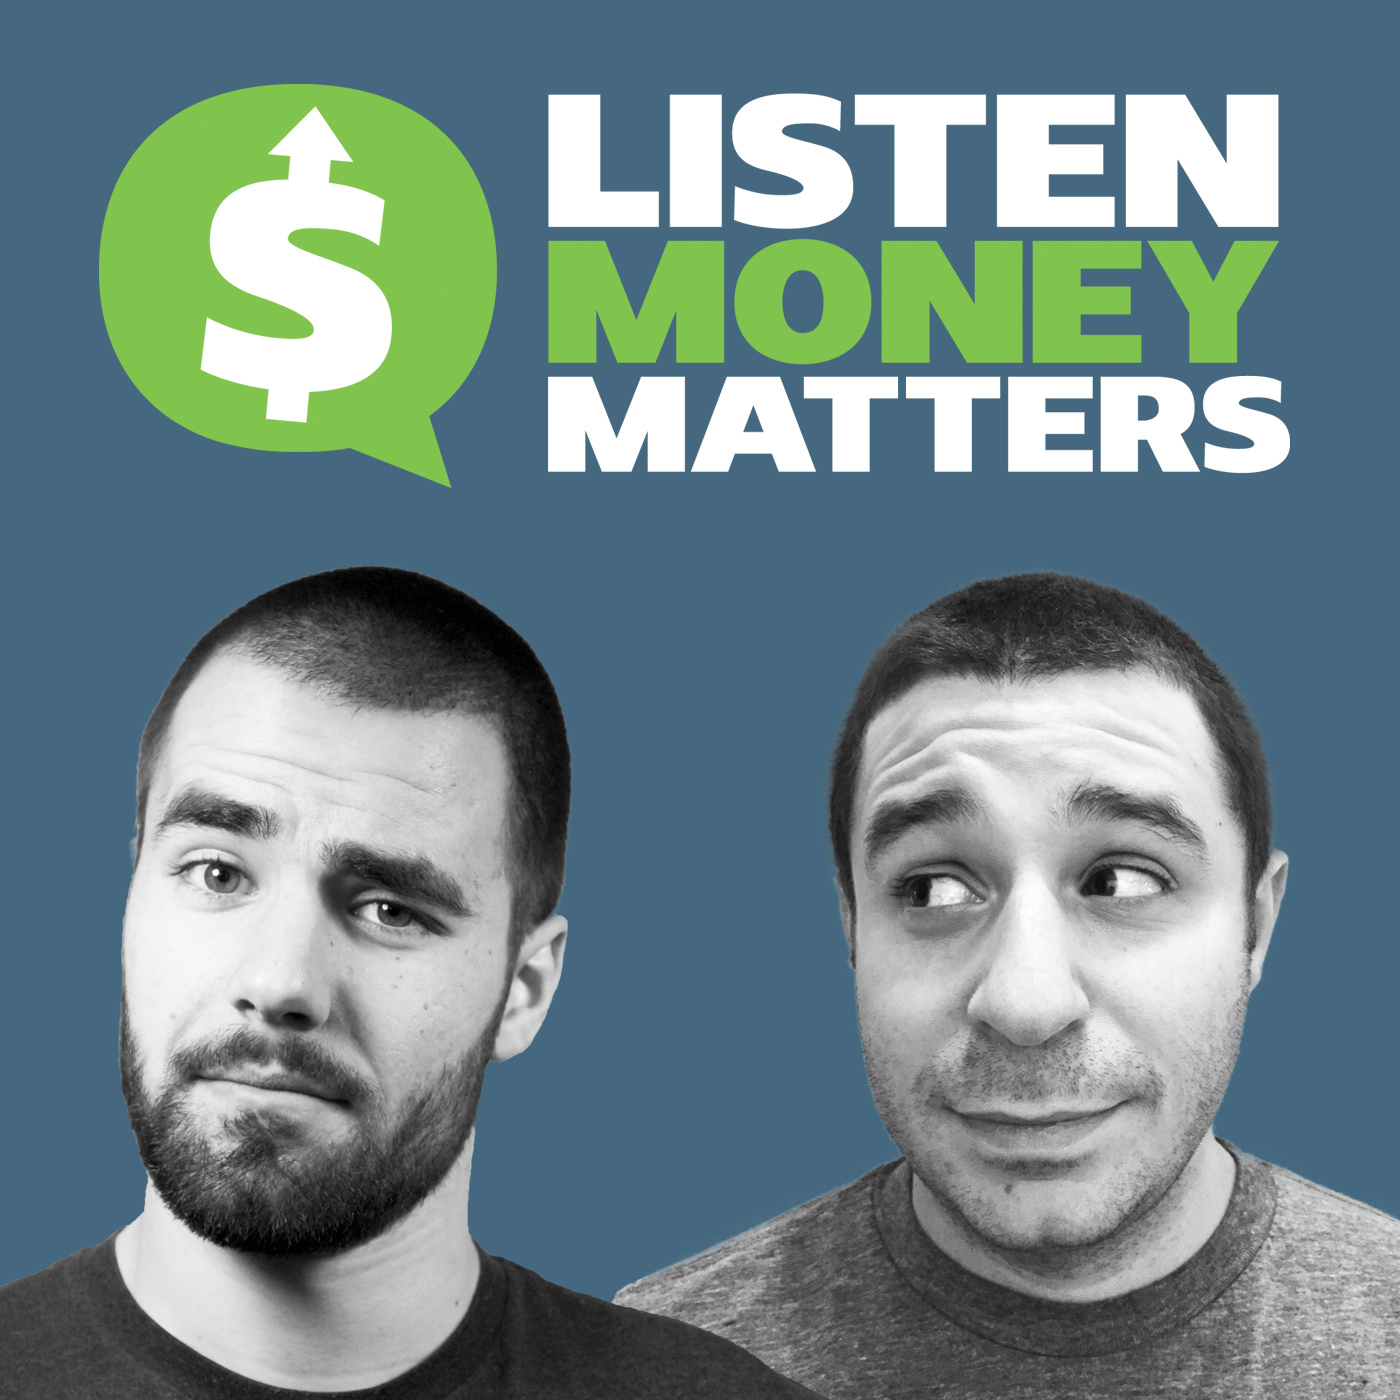 Listen Money Matters! A Personal Finance Show on How to Invest Simply, Crush Debt, Budget Like a Pro, Build Better Money Habits, and Productivity